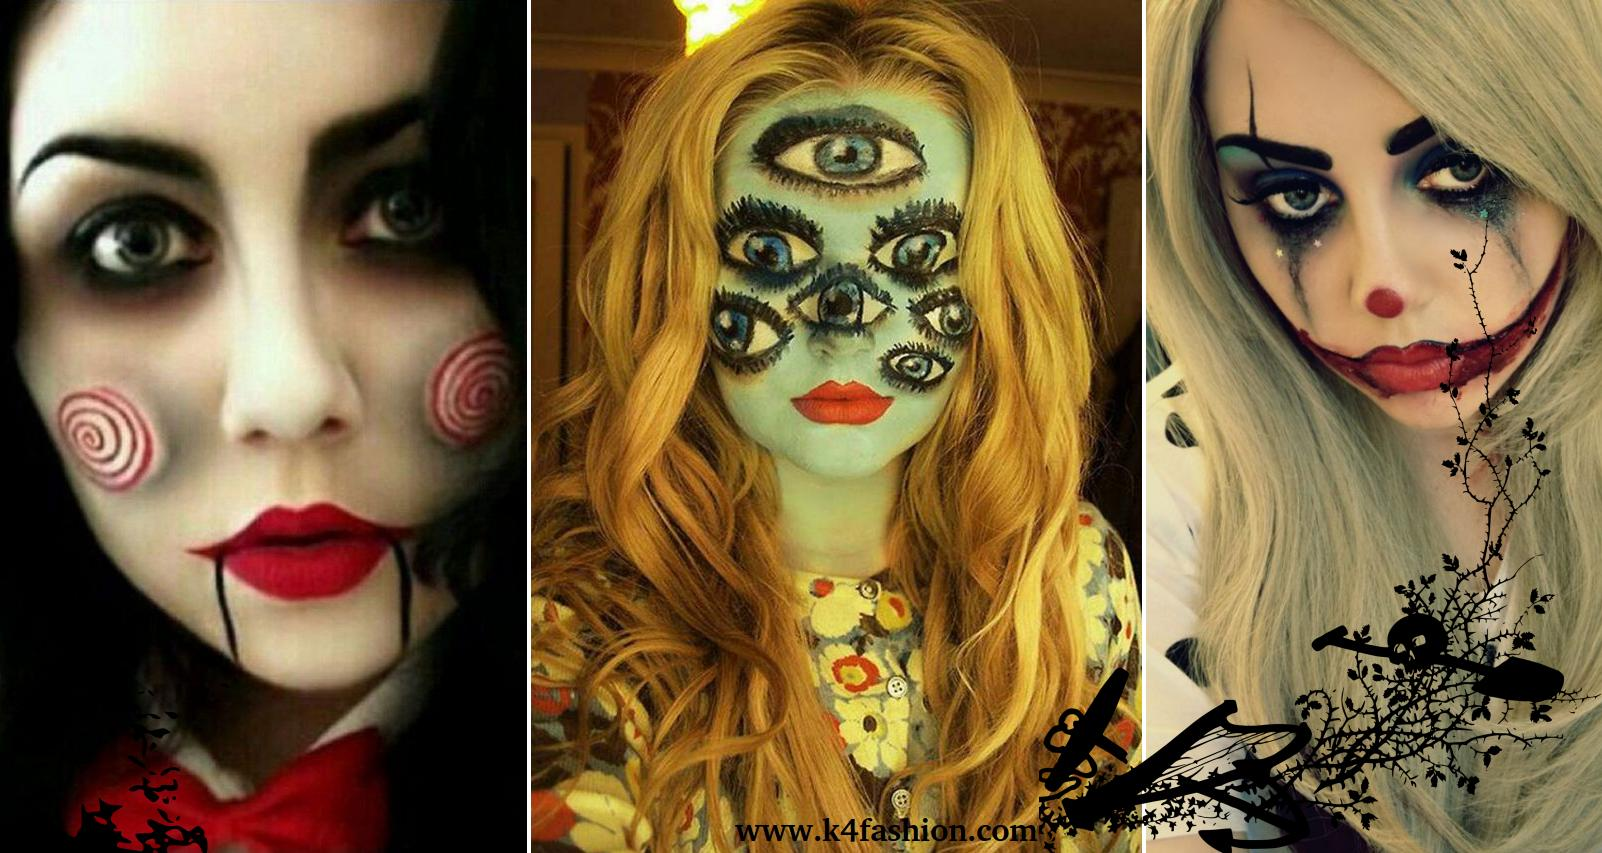 25 Pretty and Scary Halloween Makeup Ideas to Try This Year - K4 Fashion